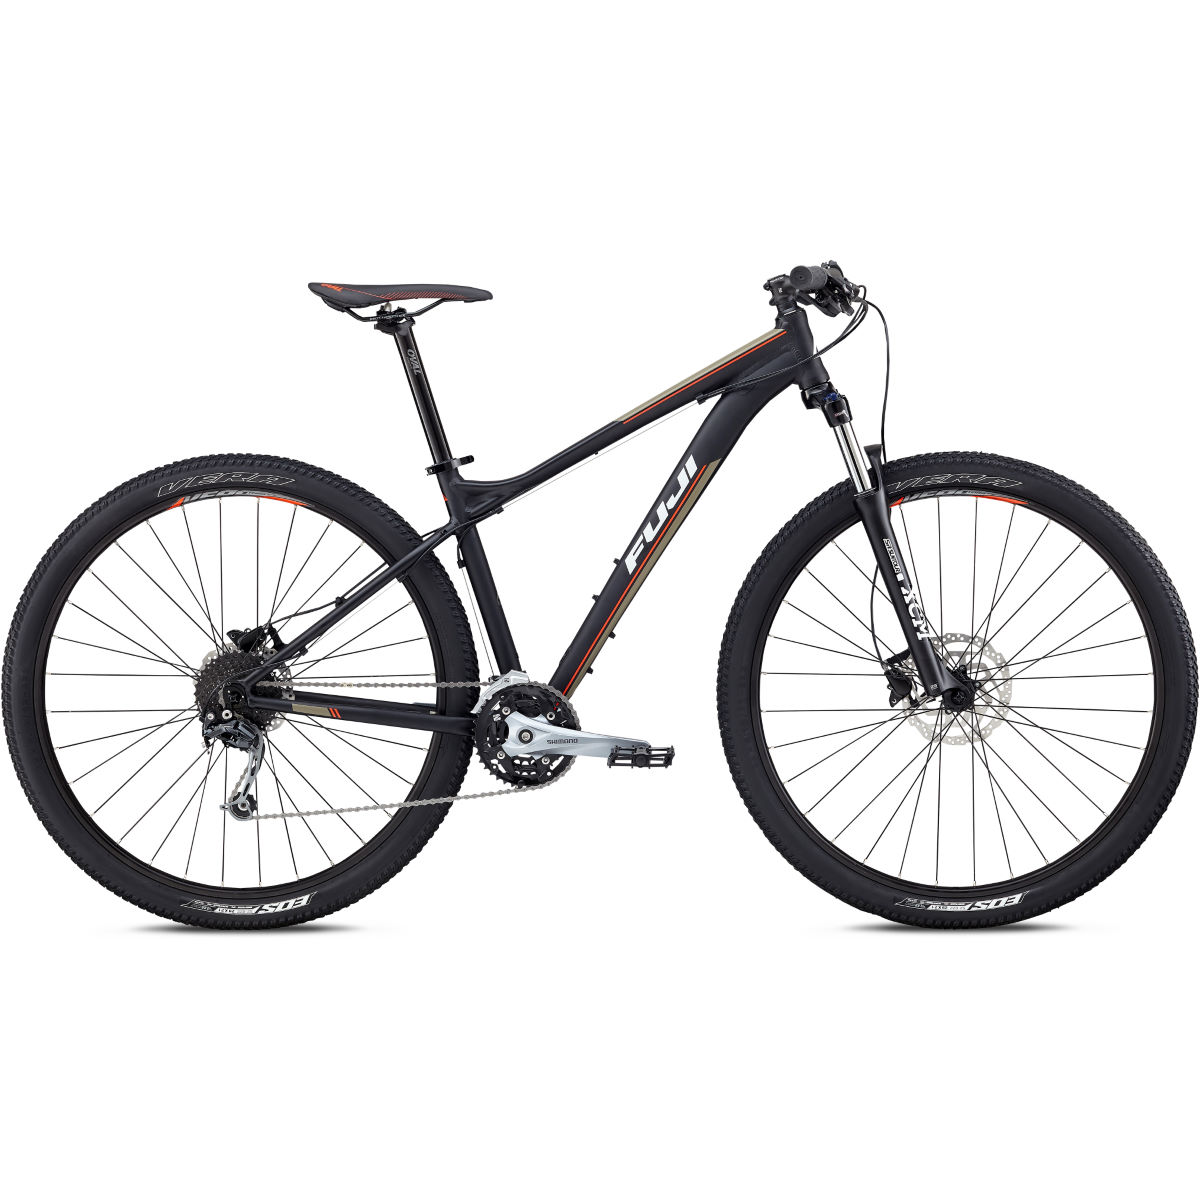 VTT semi-rigide Fuji Nevada 29 1.5 - 48cm(19'') Stock Bike